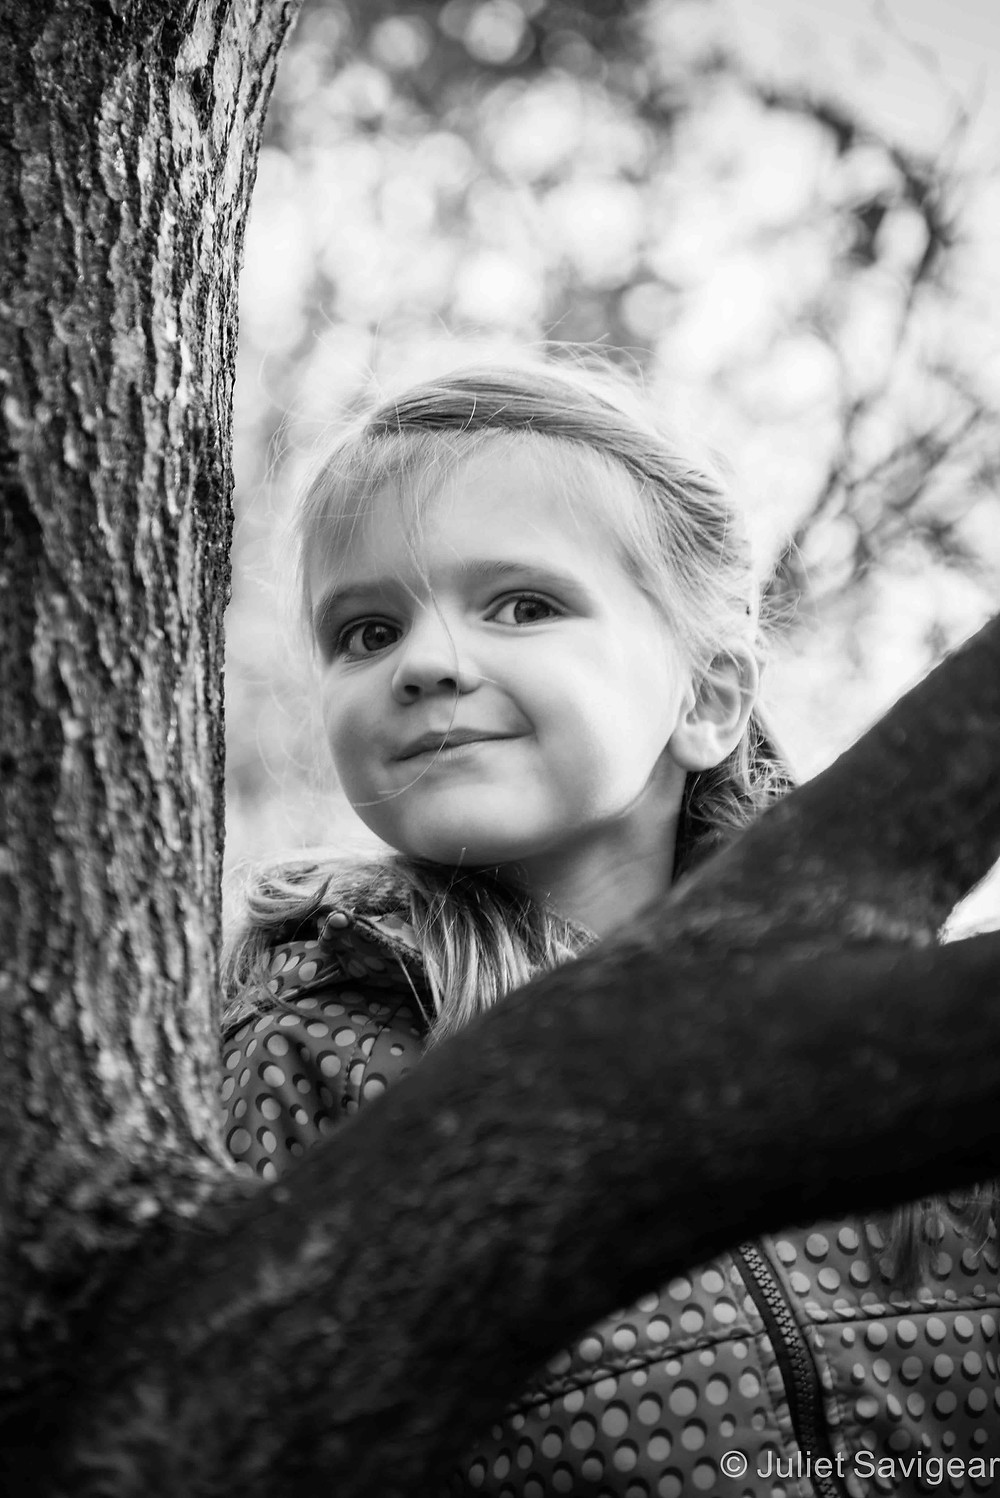 Among The Branches - Children's Photography, Wandsworth Common